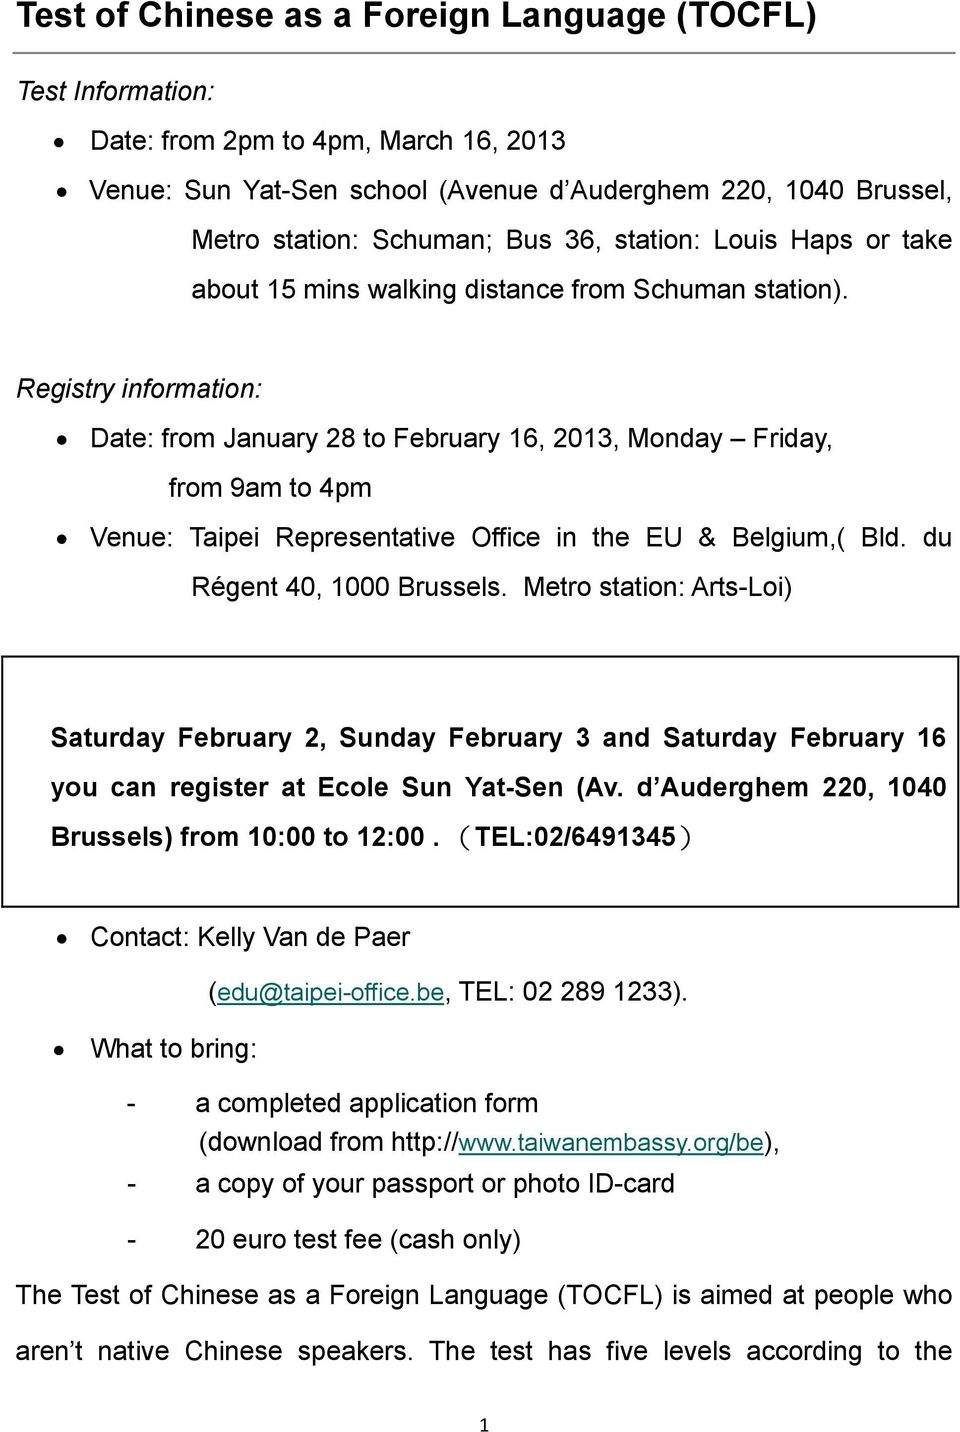 Registry information: Date: from January 28 to February 16, 2013, Monday Friday, from 9am to 4pm Venue: Taipei Representative Office in the EU & Belgium,( Bld. du Régent 40, 1000 Brussels.